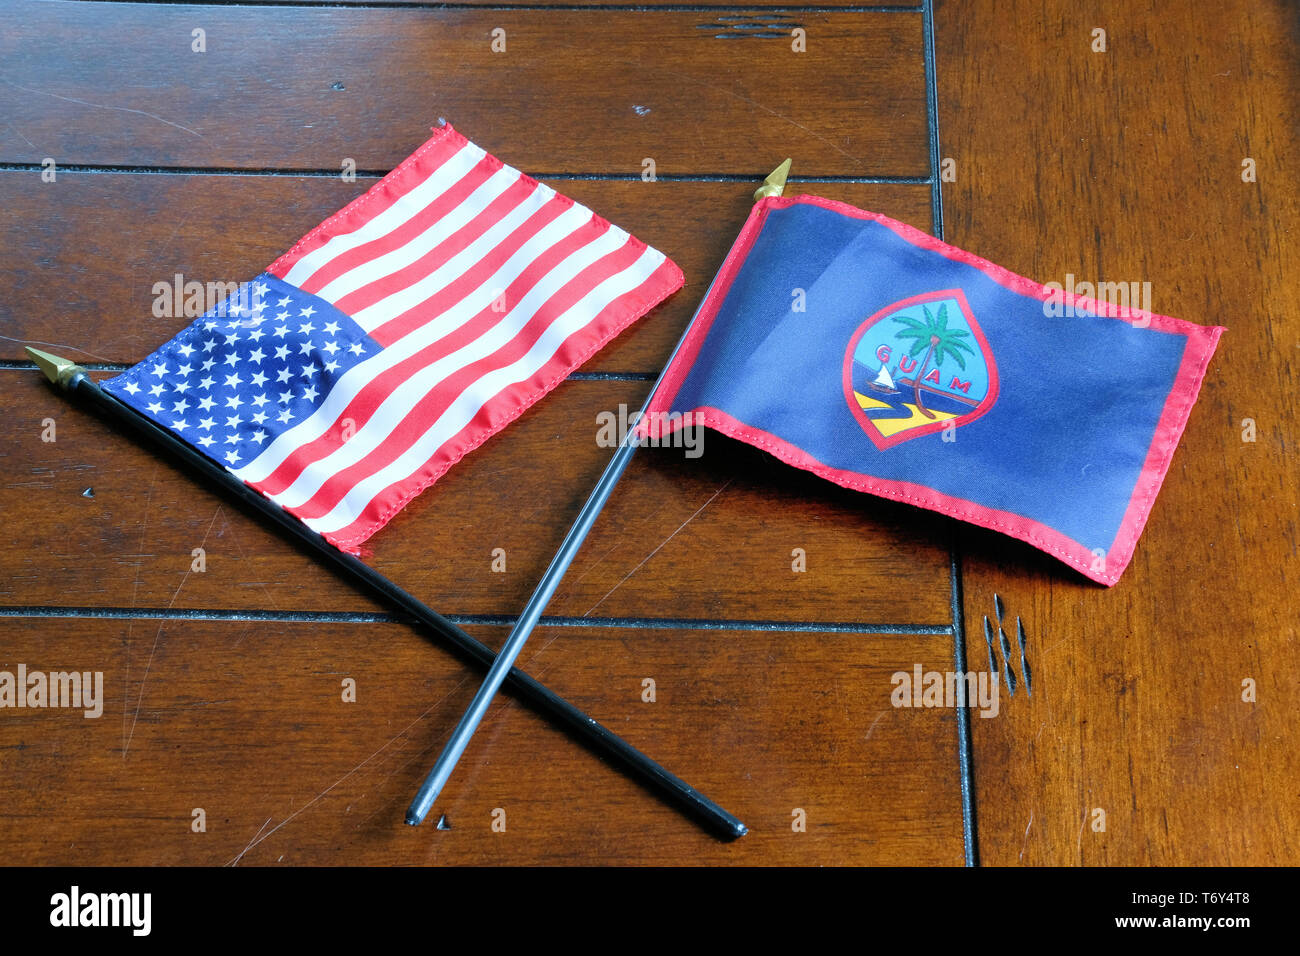 Flags of the United States and Guam; American-Guamanian relations. Stock Photo